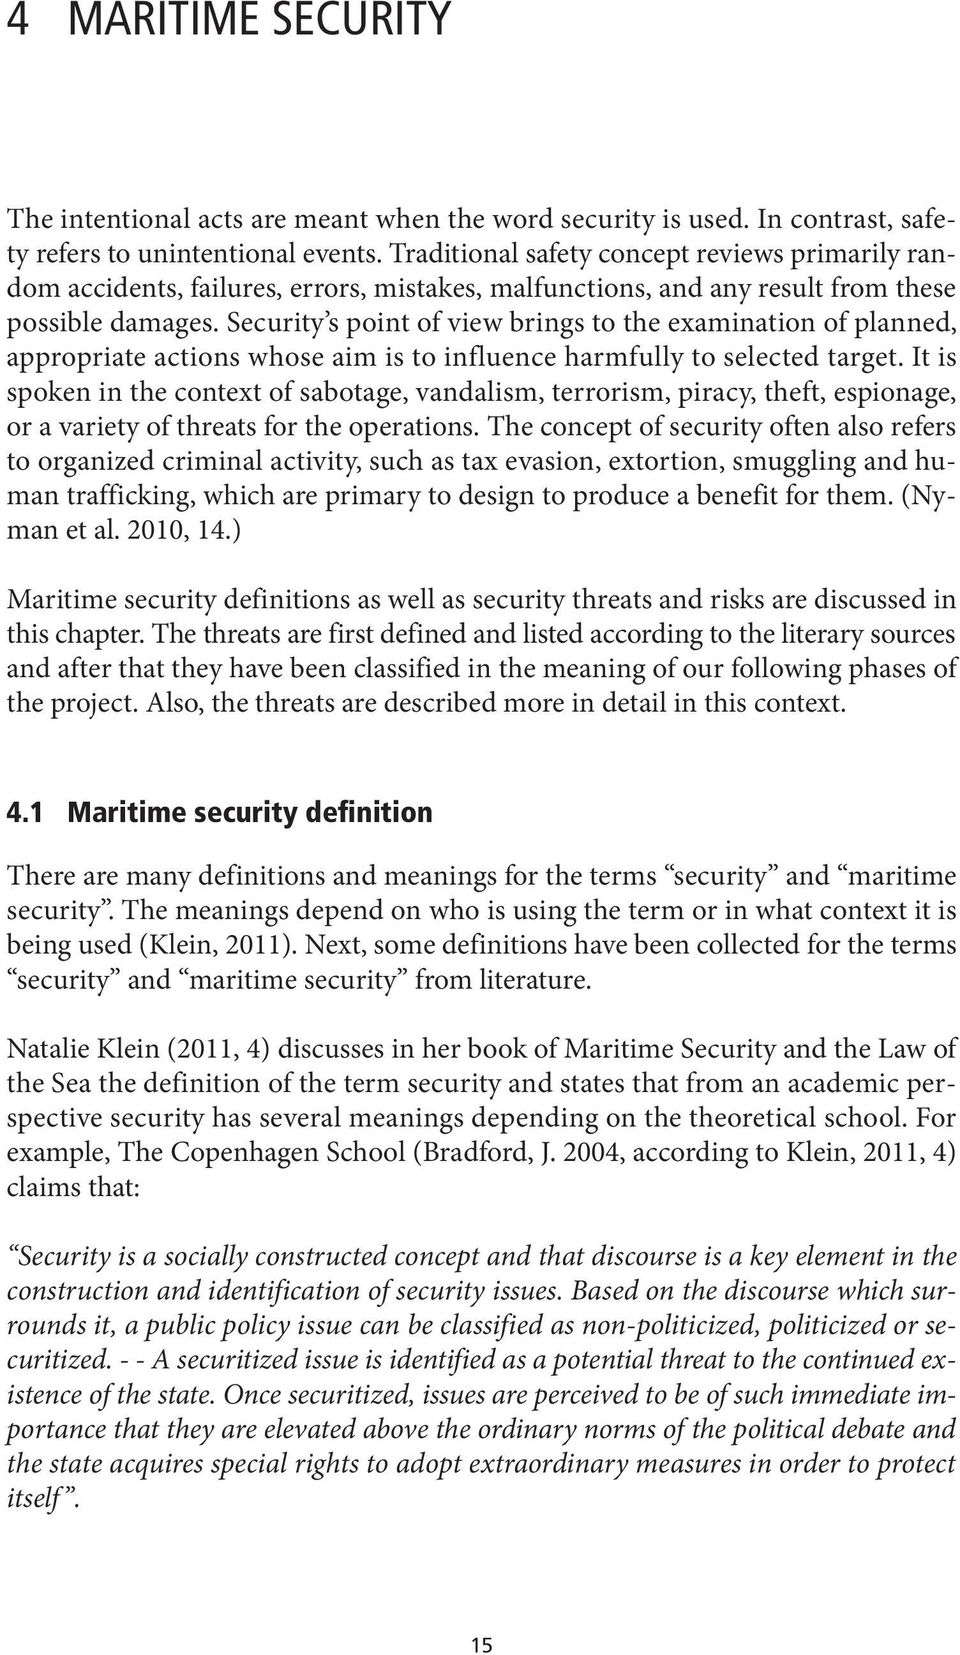 Maritime safety and security Literature review - PDF